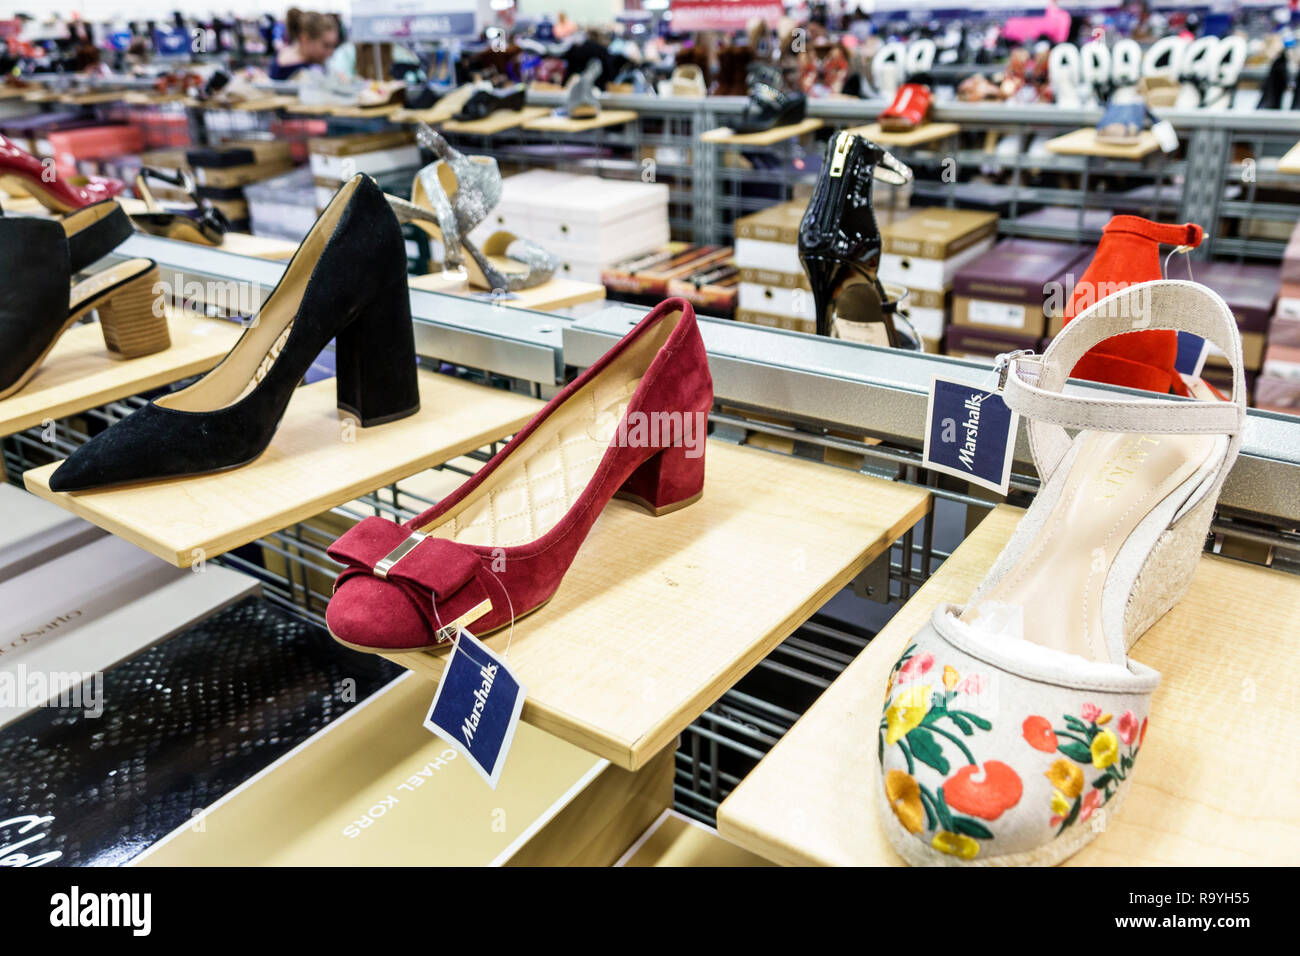 Fort Ft. Lauderdale Florida Sunrise Sawgrass Mills Mall shopping Marshalls Discount Department Store inside display sale women's shoes - Stock Image